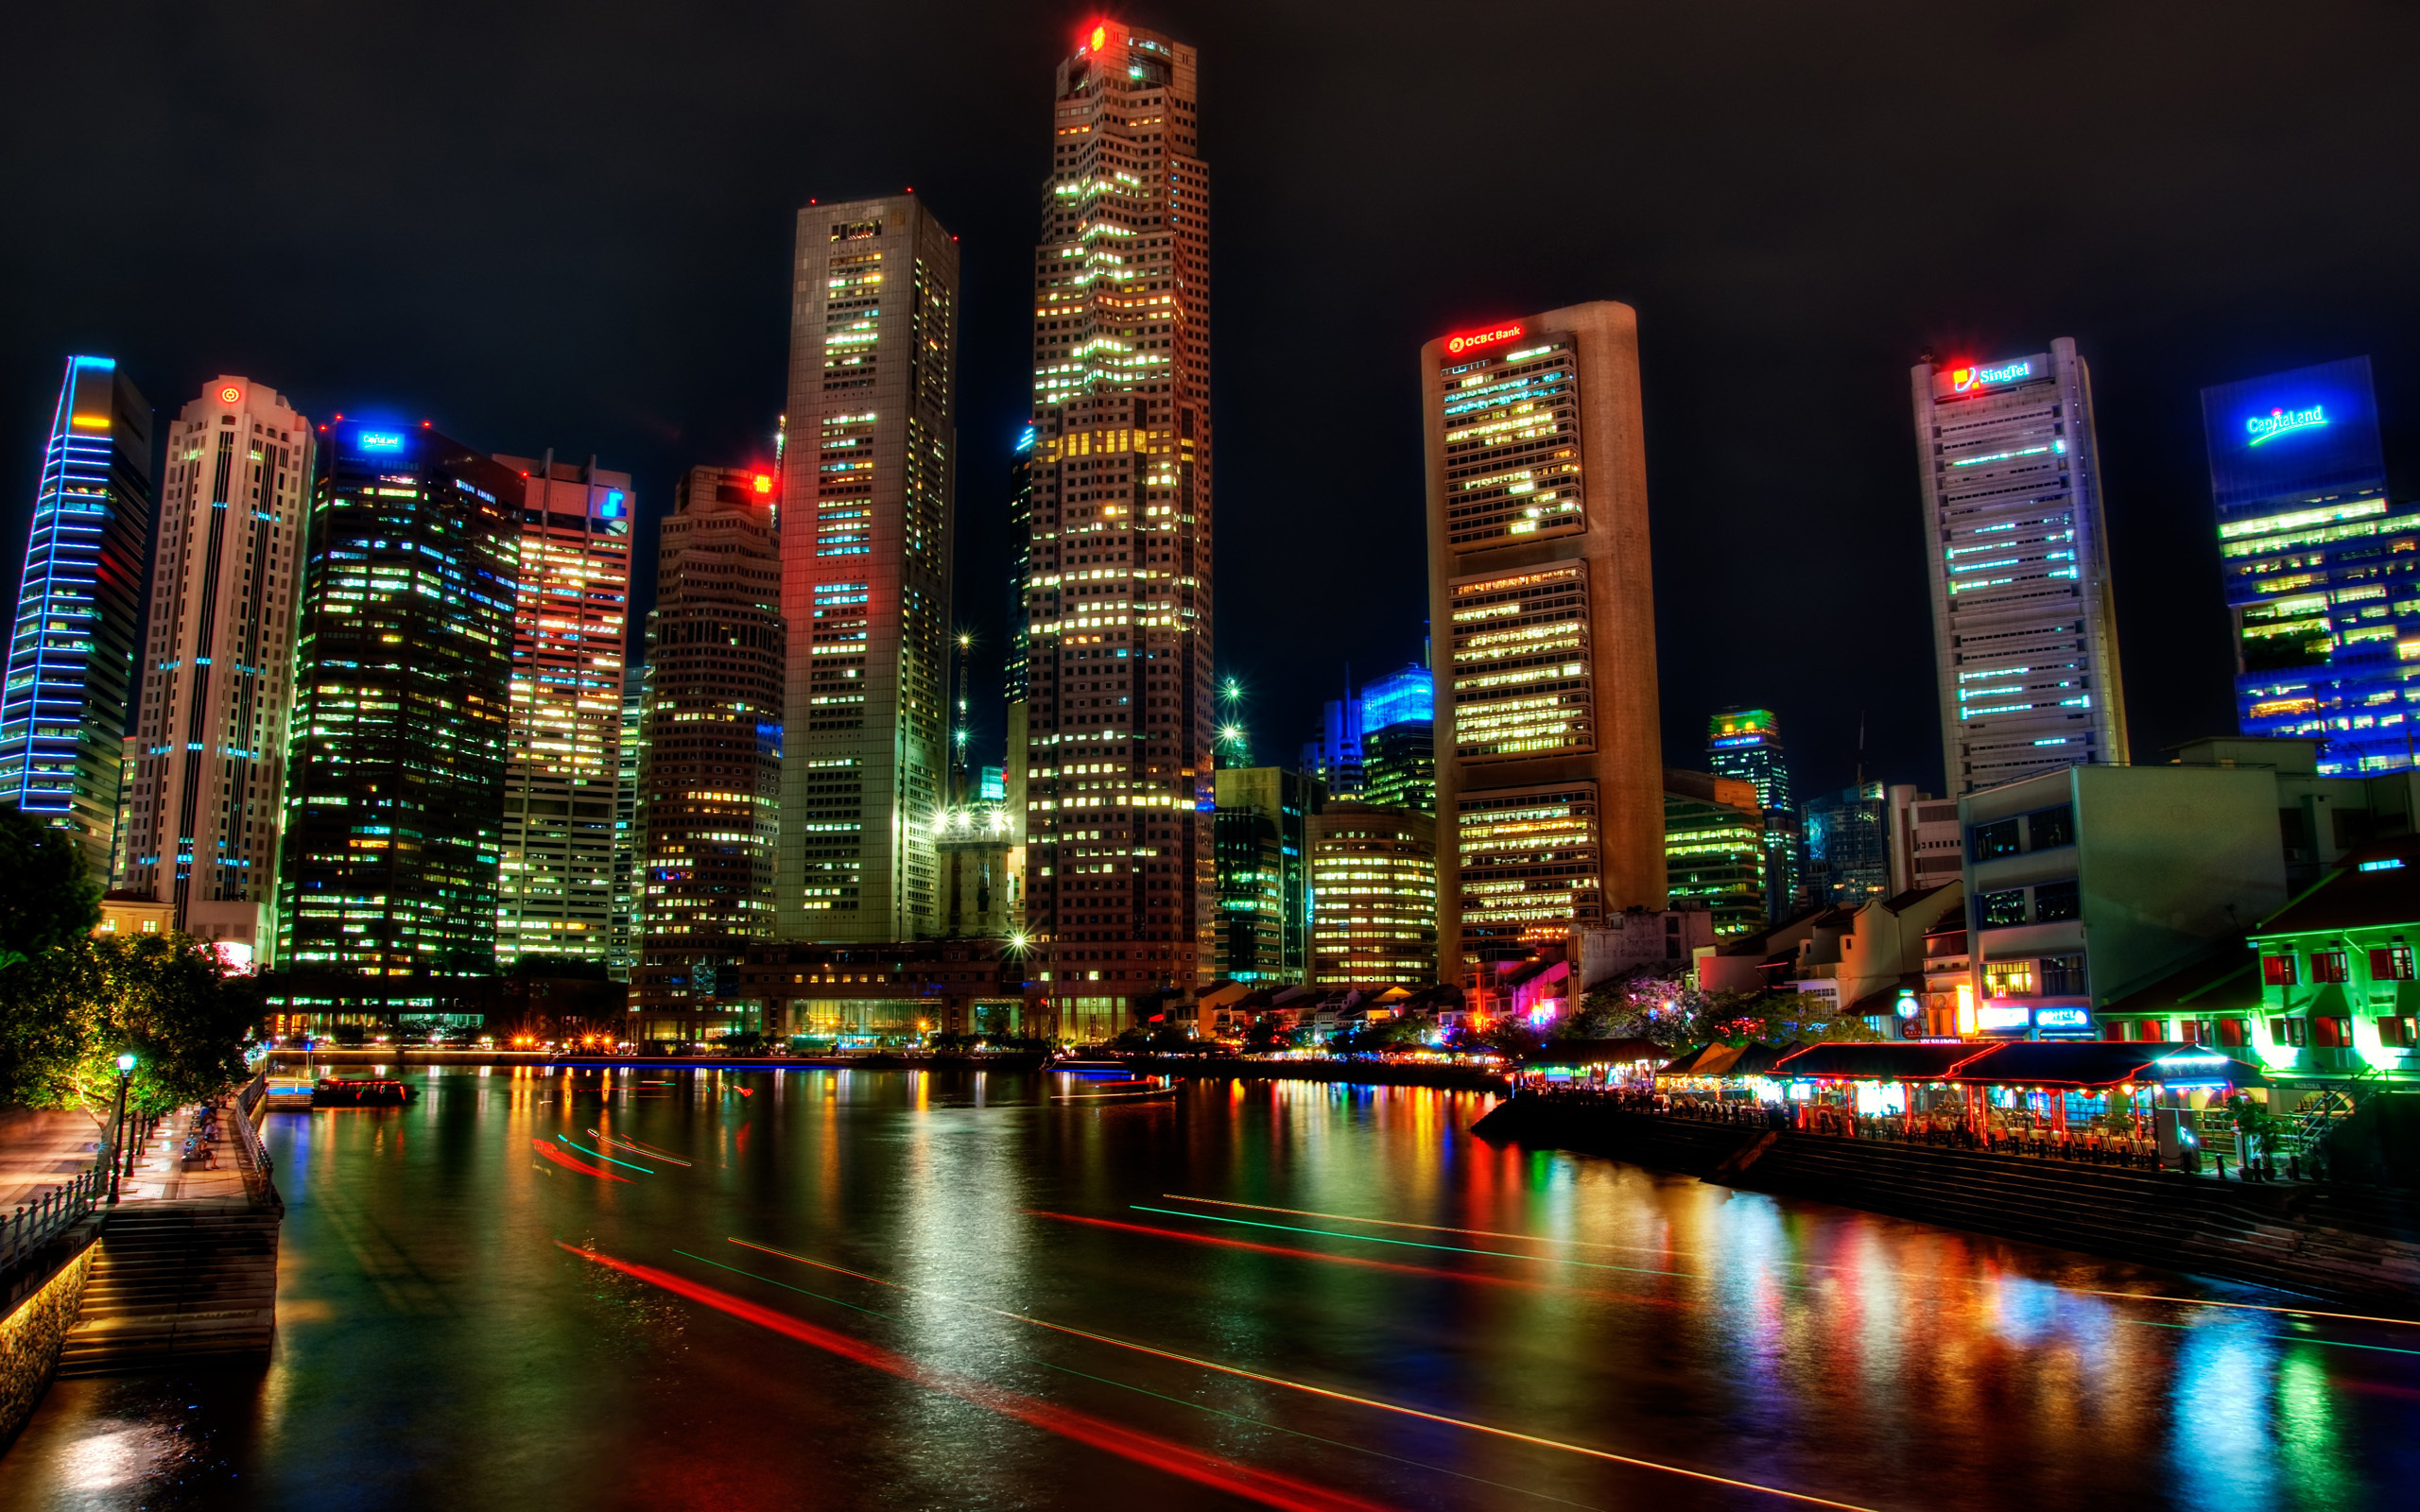 Singapore HD Wallpaper | Background Image | 2560x1600 | ID:389059 - Wallpaper Abyss